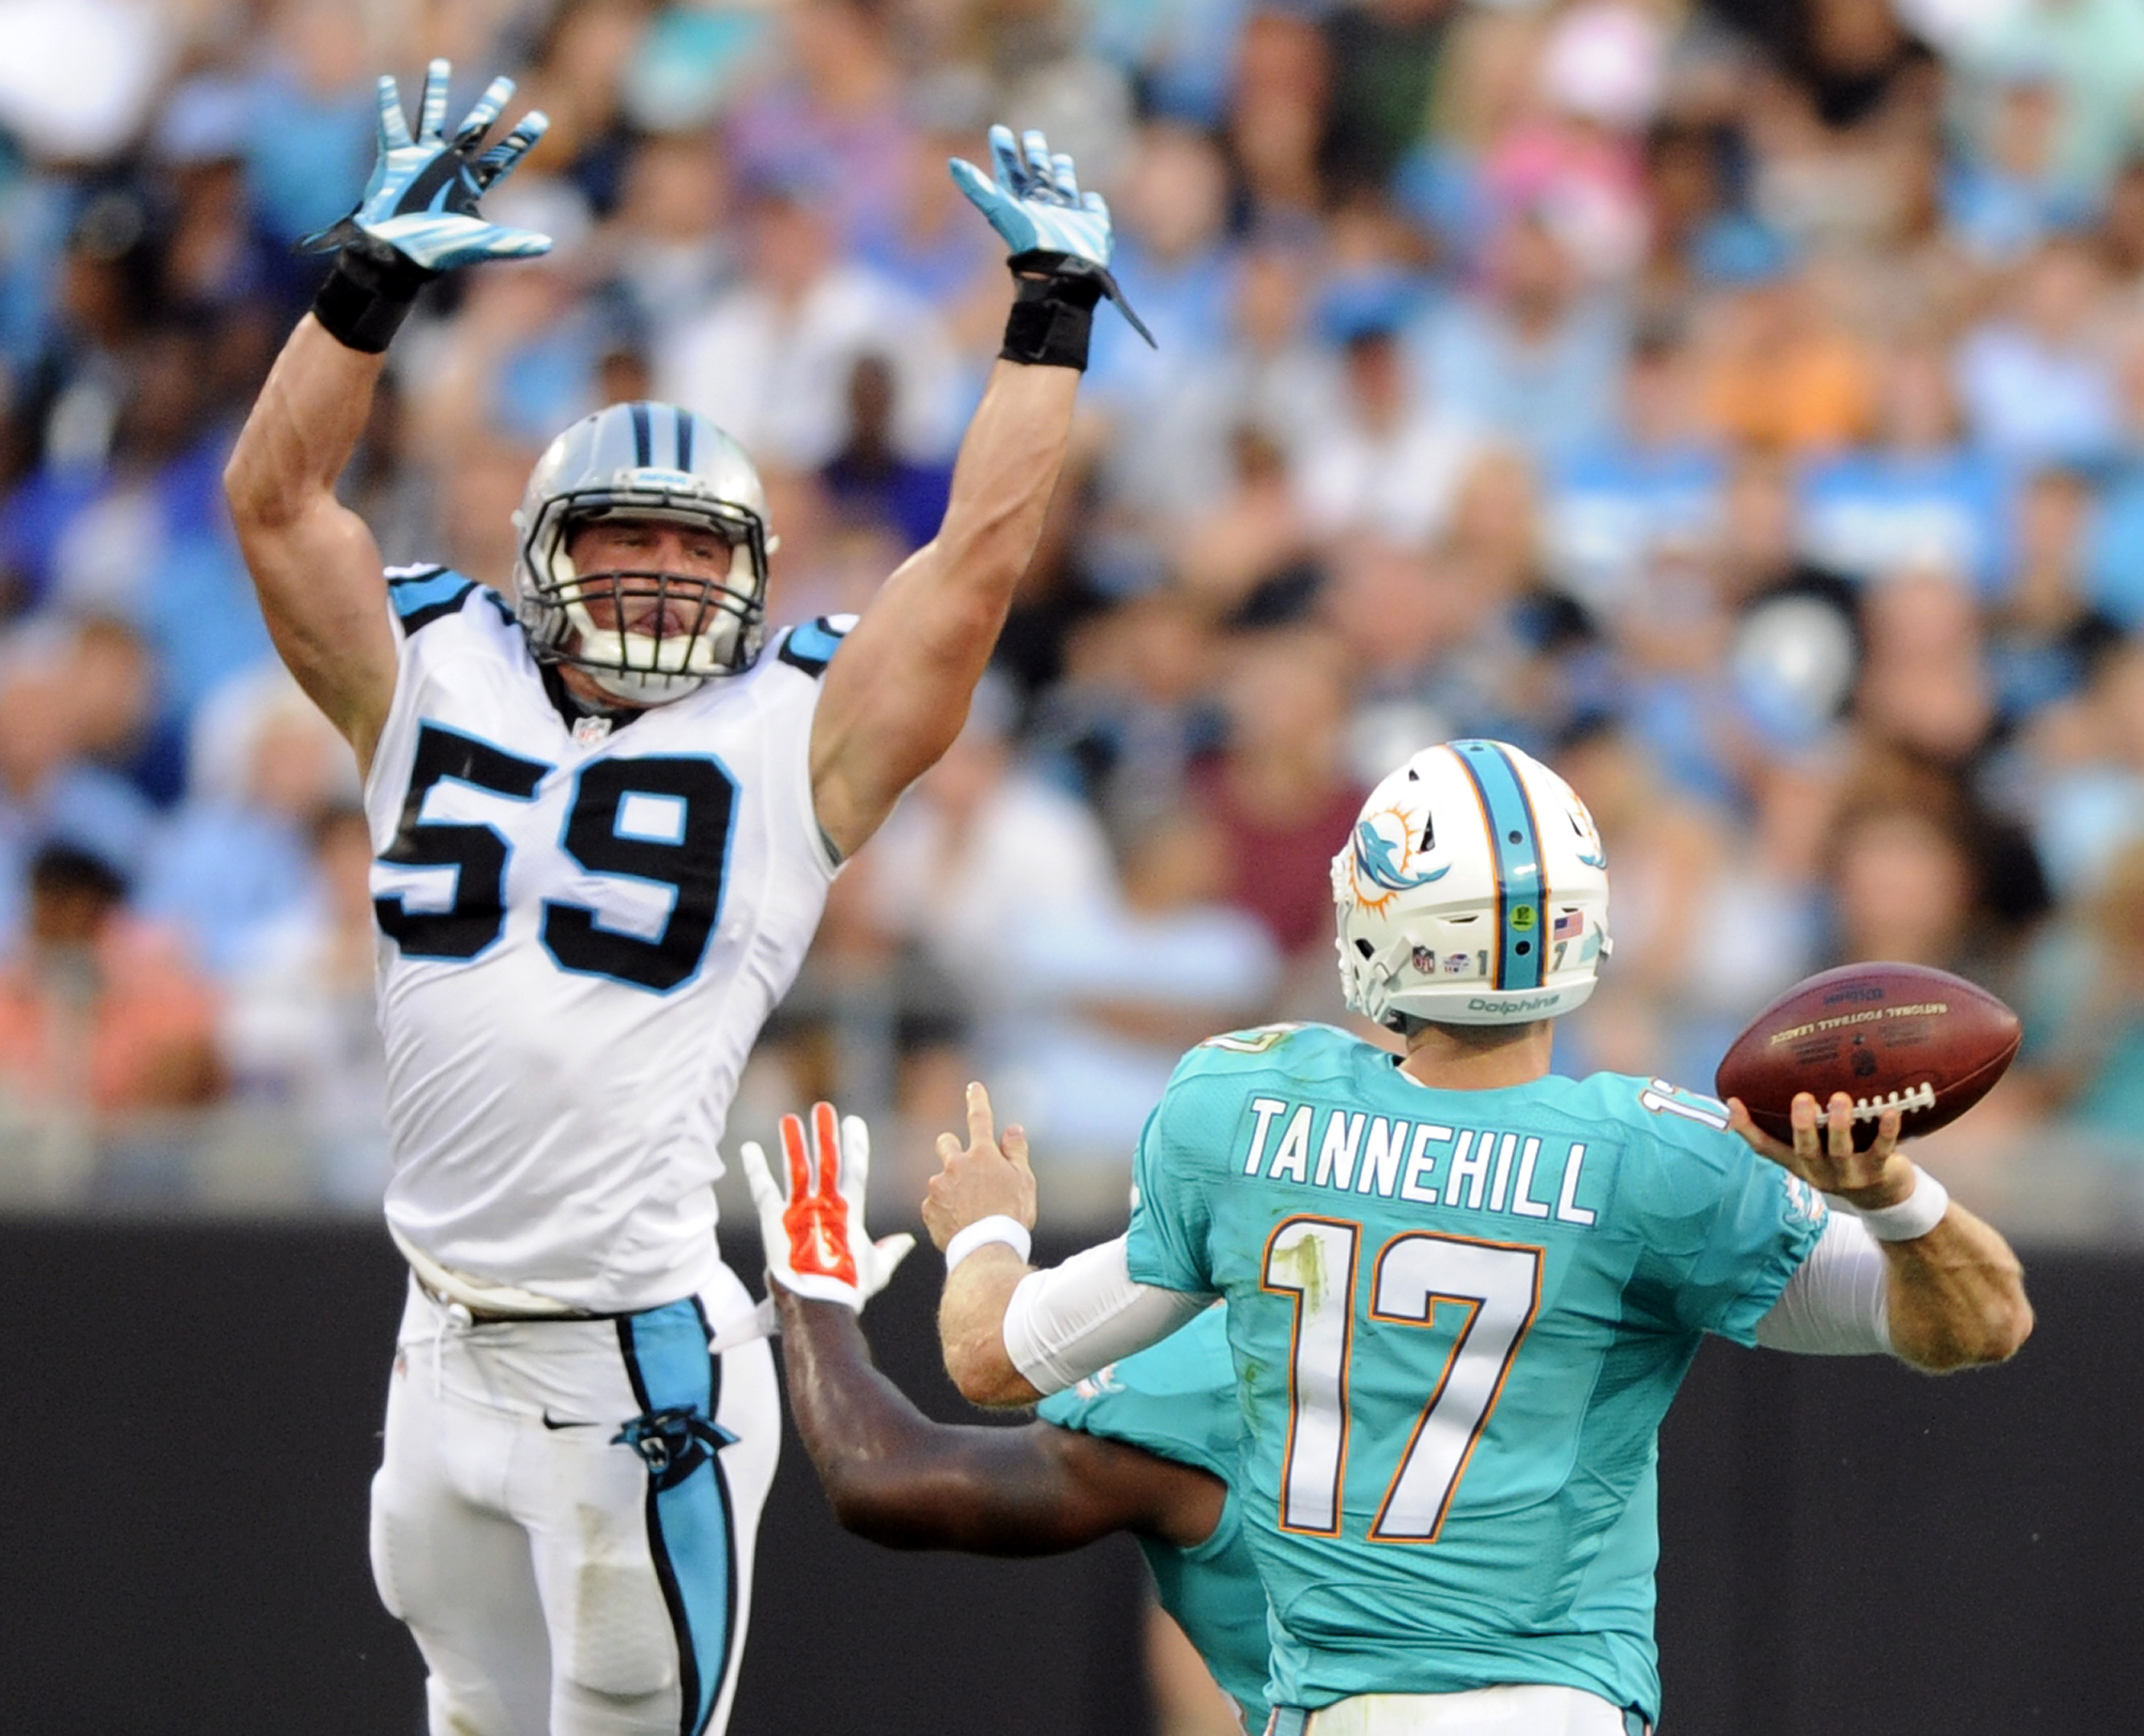 In this photo taken Aug. 22, 2015 Miami Dolphins' Ryan Tannehill (17) looks to pass over Carolina Panthers' Luke Kuechly (59) during the first half of an NFL preseason football game in Charlotte, N.C. A person familiar with the situation says Luke Kuechly